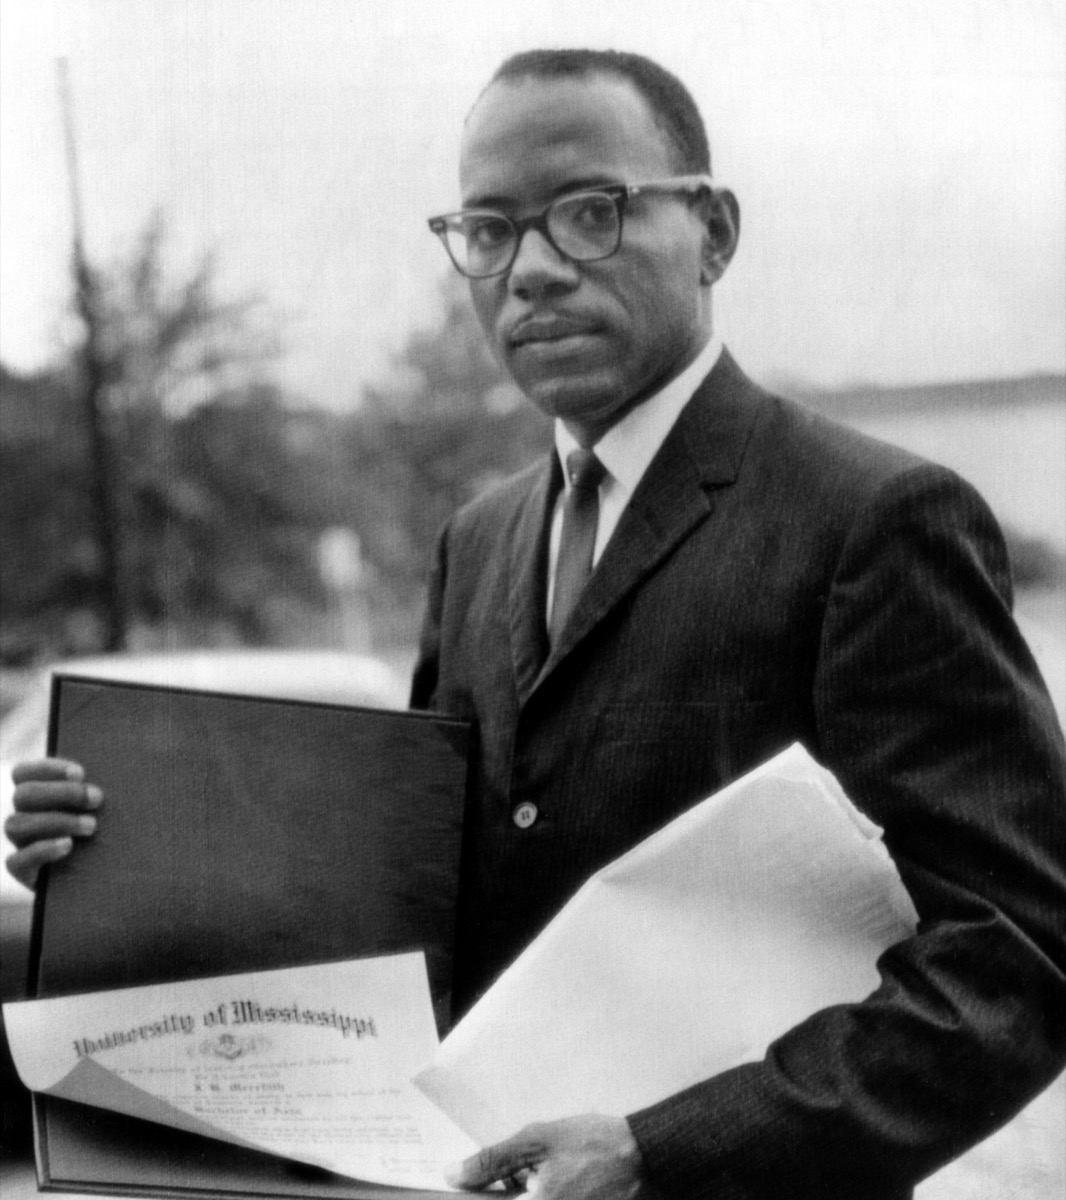 James Meredith, first African American to ever enroll and graduate from the University of Mississippi displays his diploma